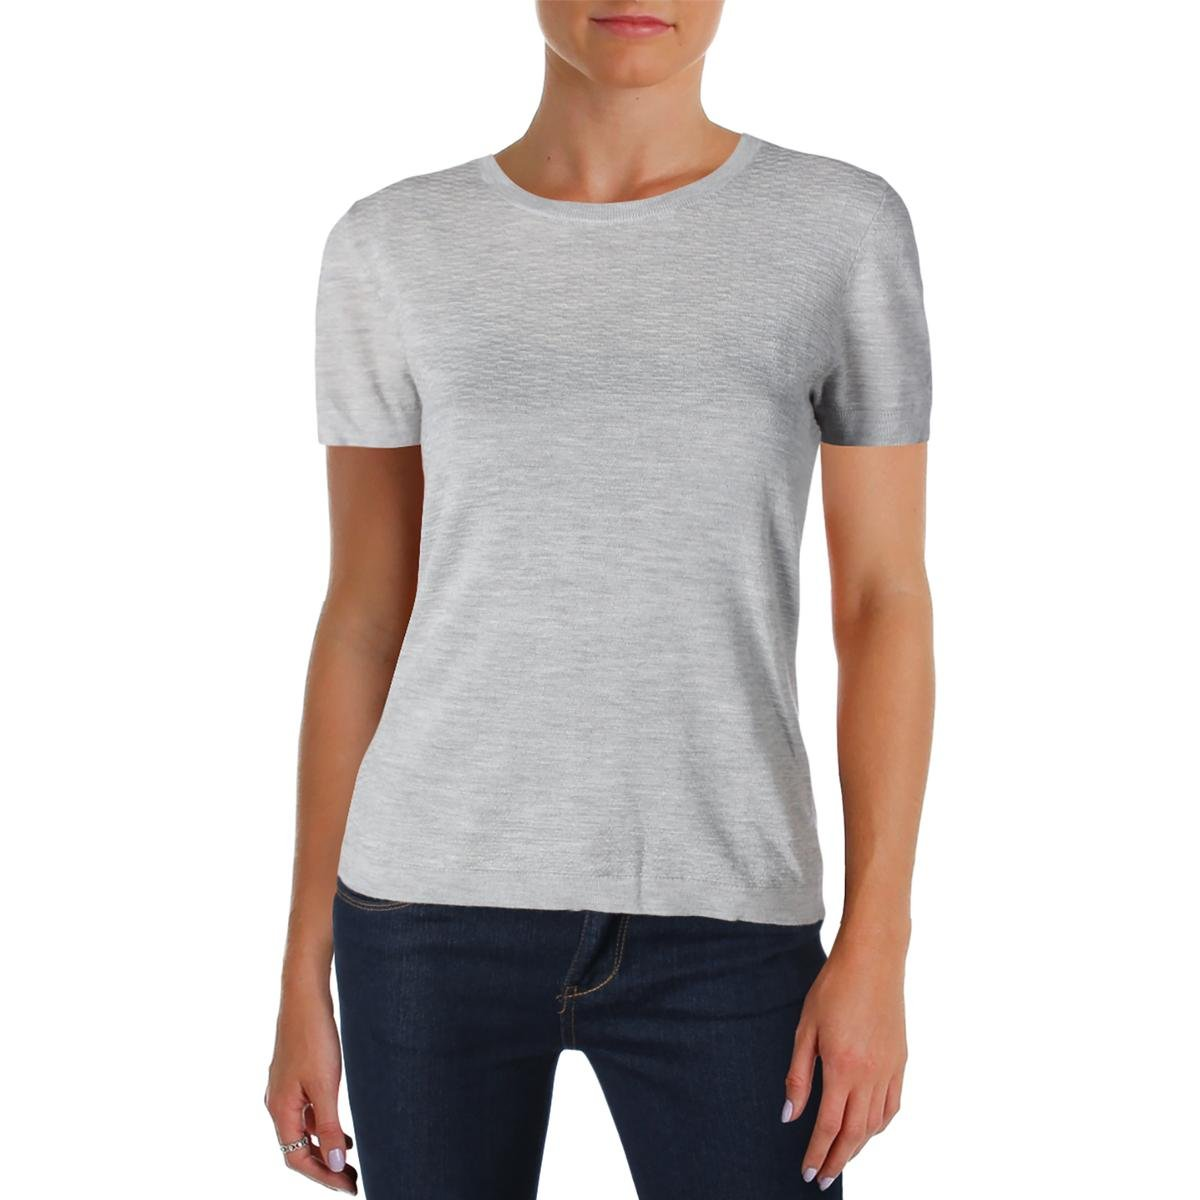 Hugo Boss BOSS Womens Floraria Extra Fine Merino Wool Textured Casual Top Gray M